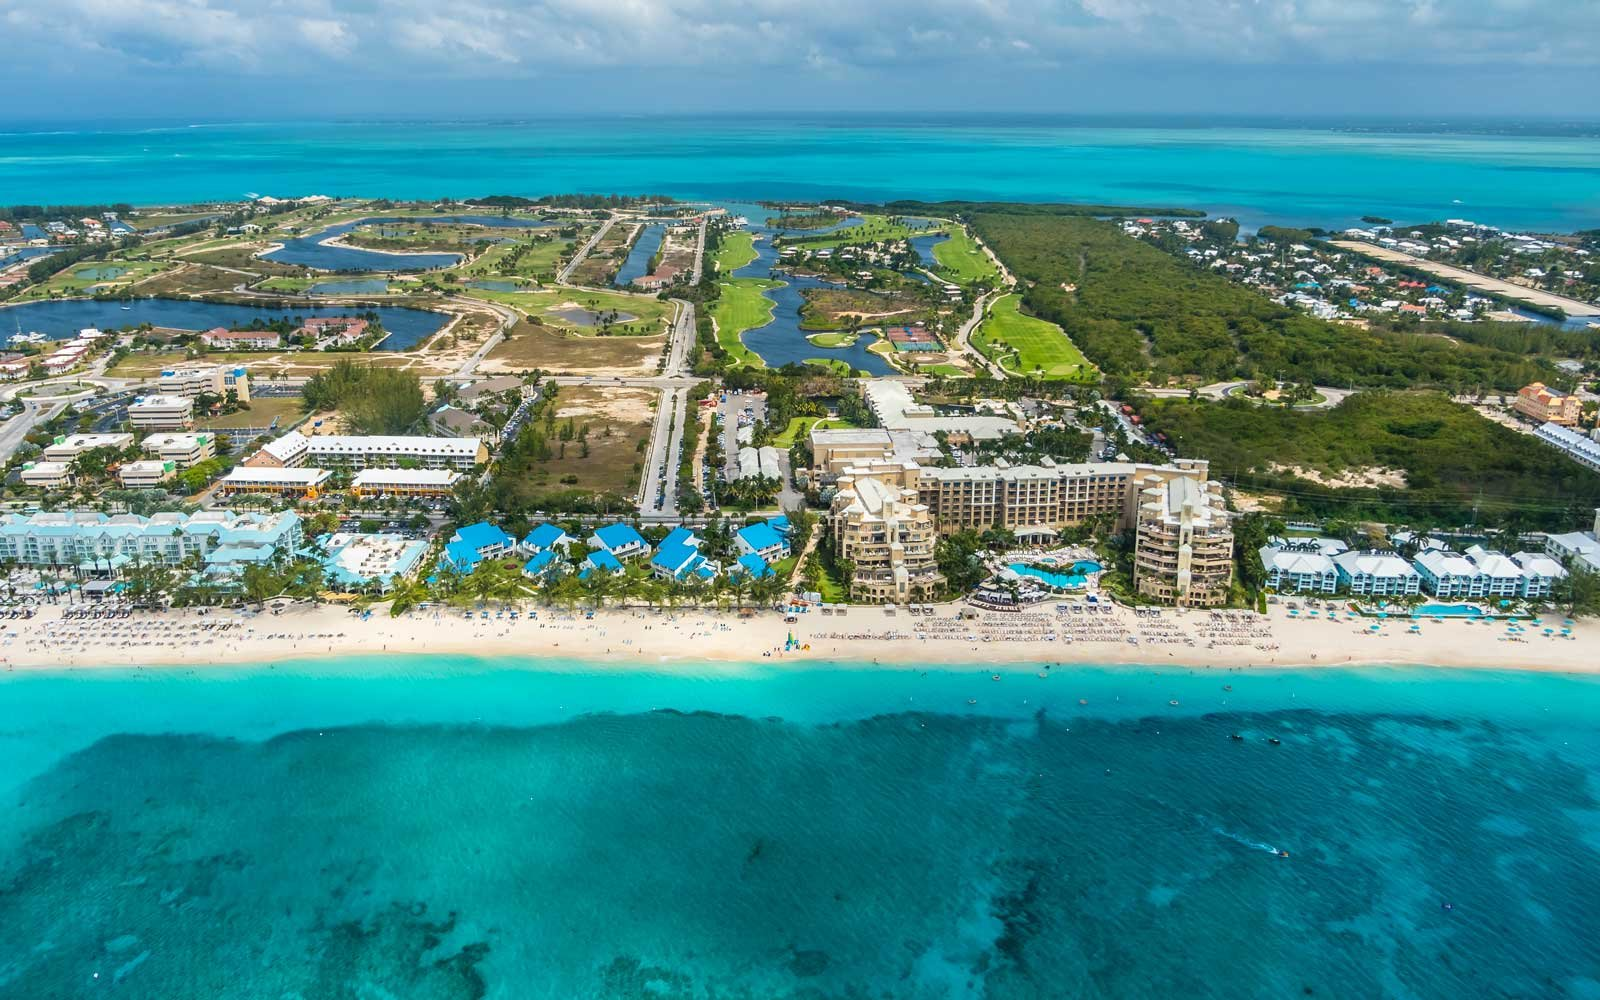 Warm Weather Caribbean, Cayman Islands, George Town, Luxury resorts and Seven Mile Beach